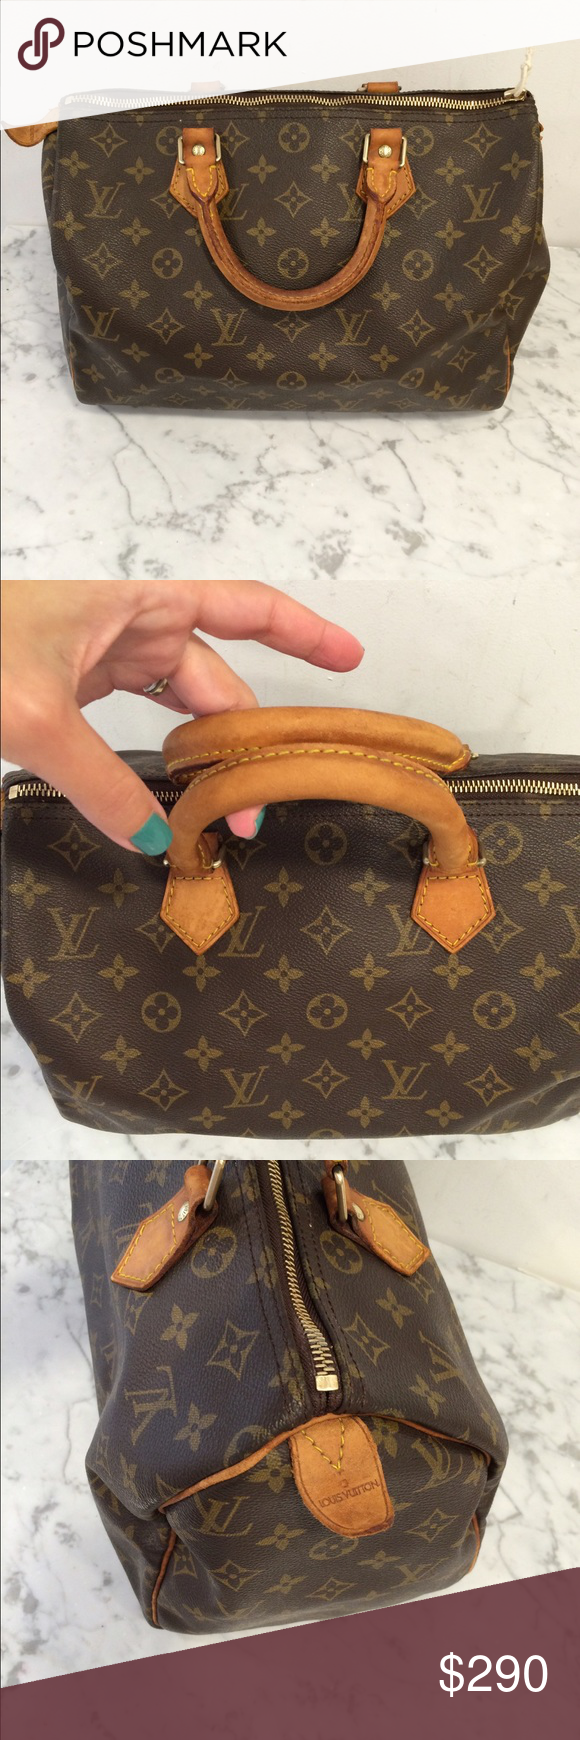 44f6603598bb Authentic Louis Vuitton speedy 30 monogram 100% authentic.zipper pull is  missing but working fine.no trades .no low offers Bags Totes